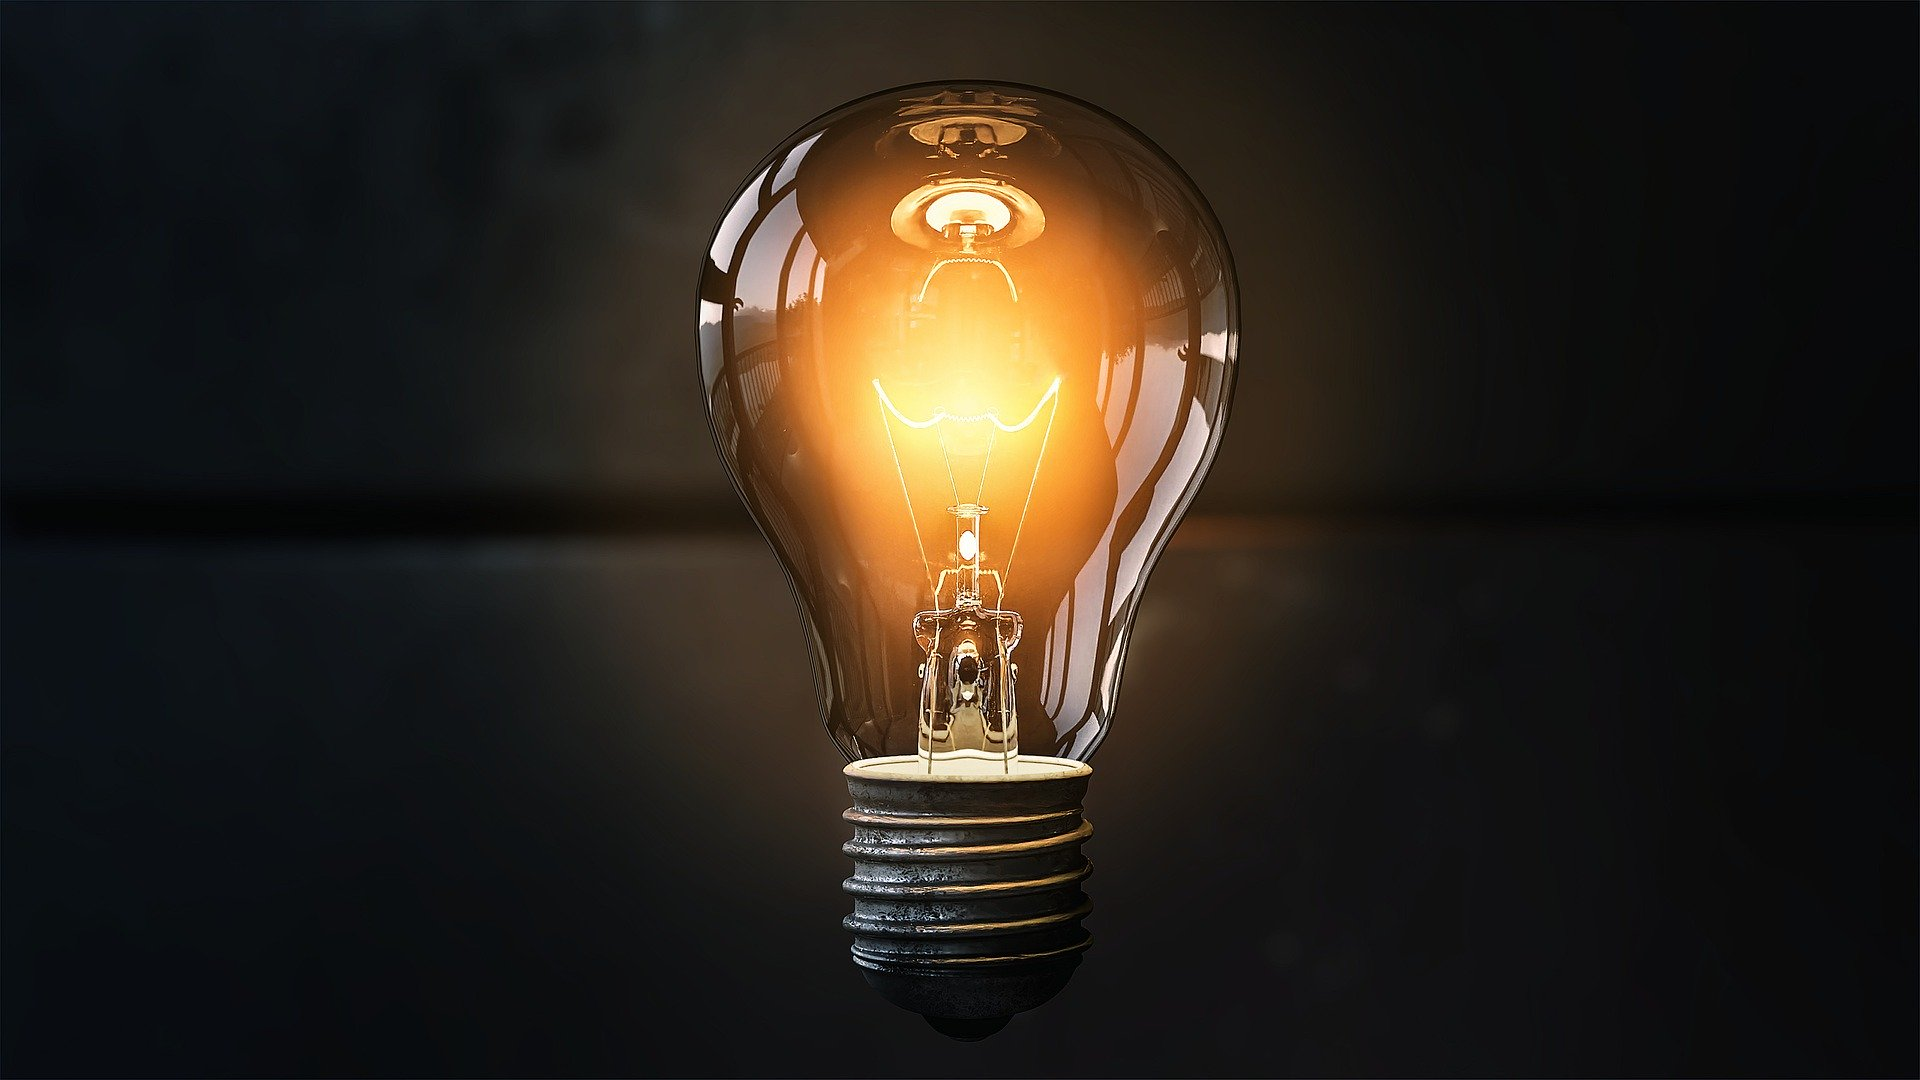 A single light bulb, illuminated